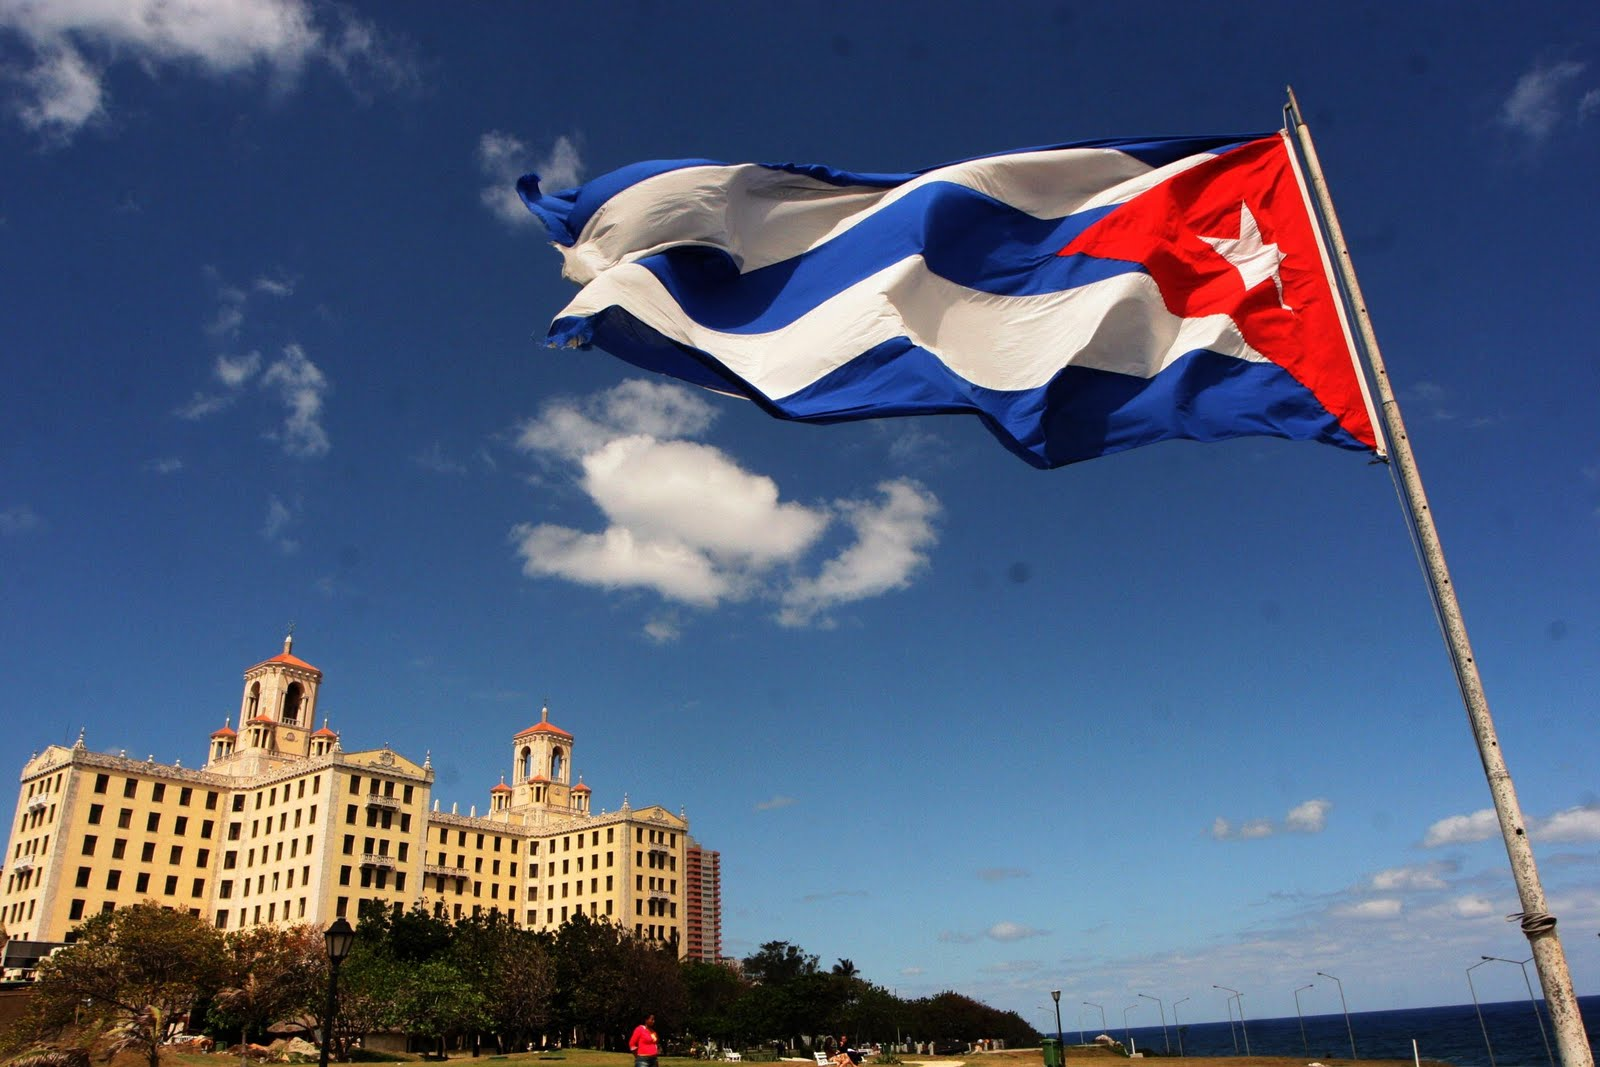 https://i2.wp.com/www.revistasumma.com/wp-content/uploads/2015/02/cuba.jpg